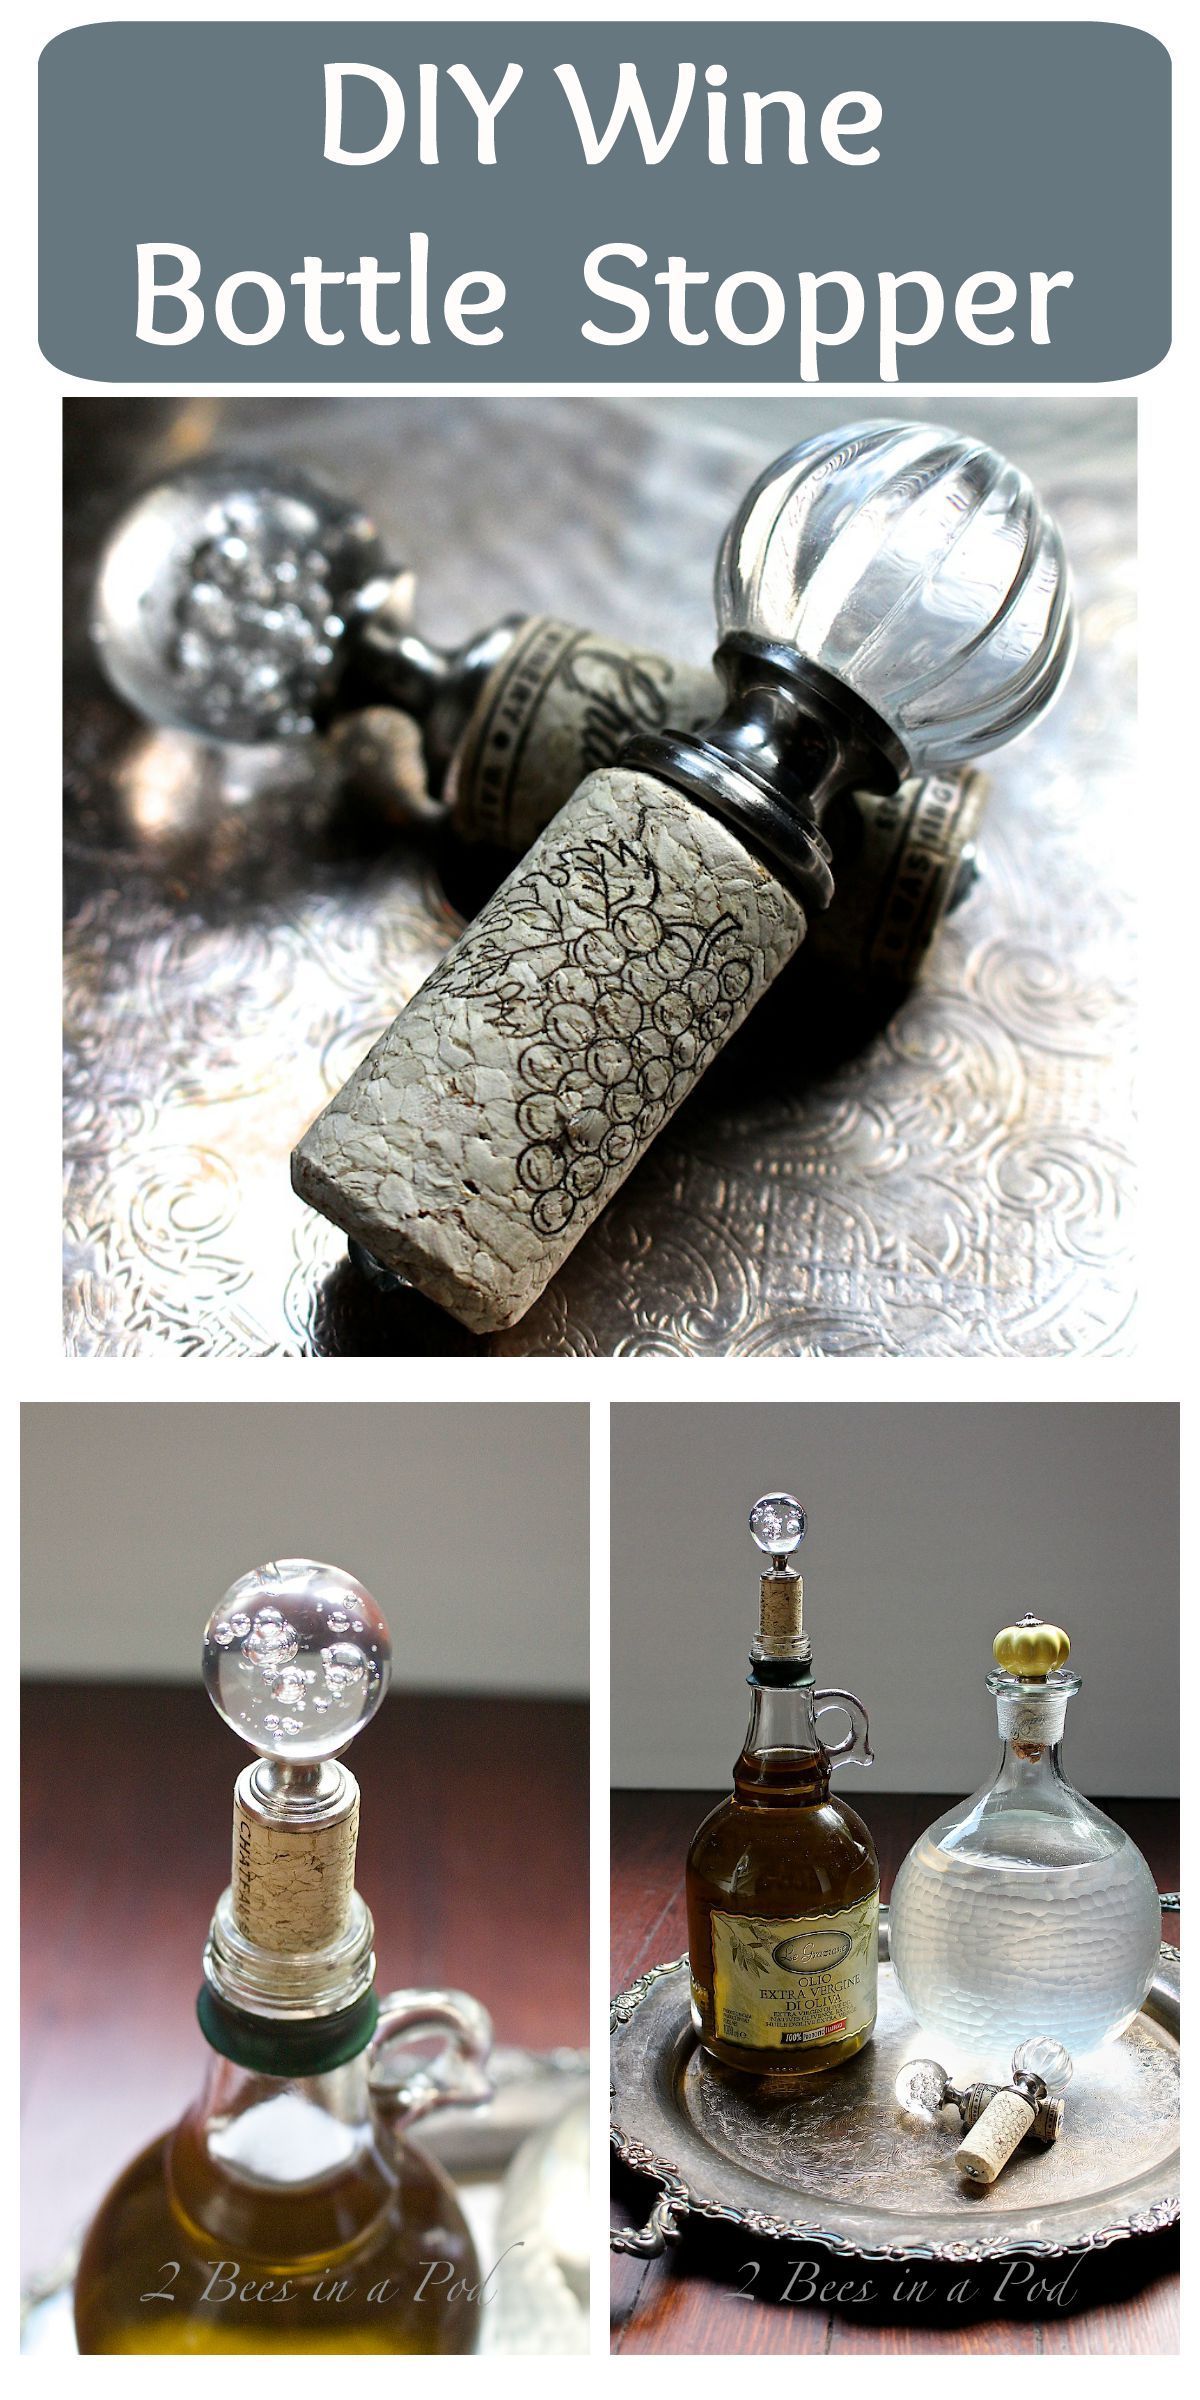 diy wine bottle stopper perfect gift idea for christmas dinner party 2